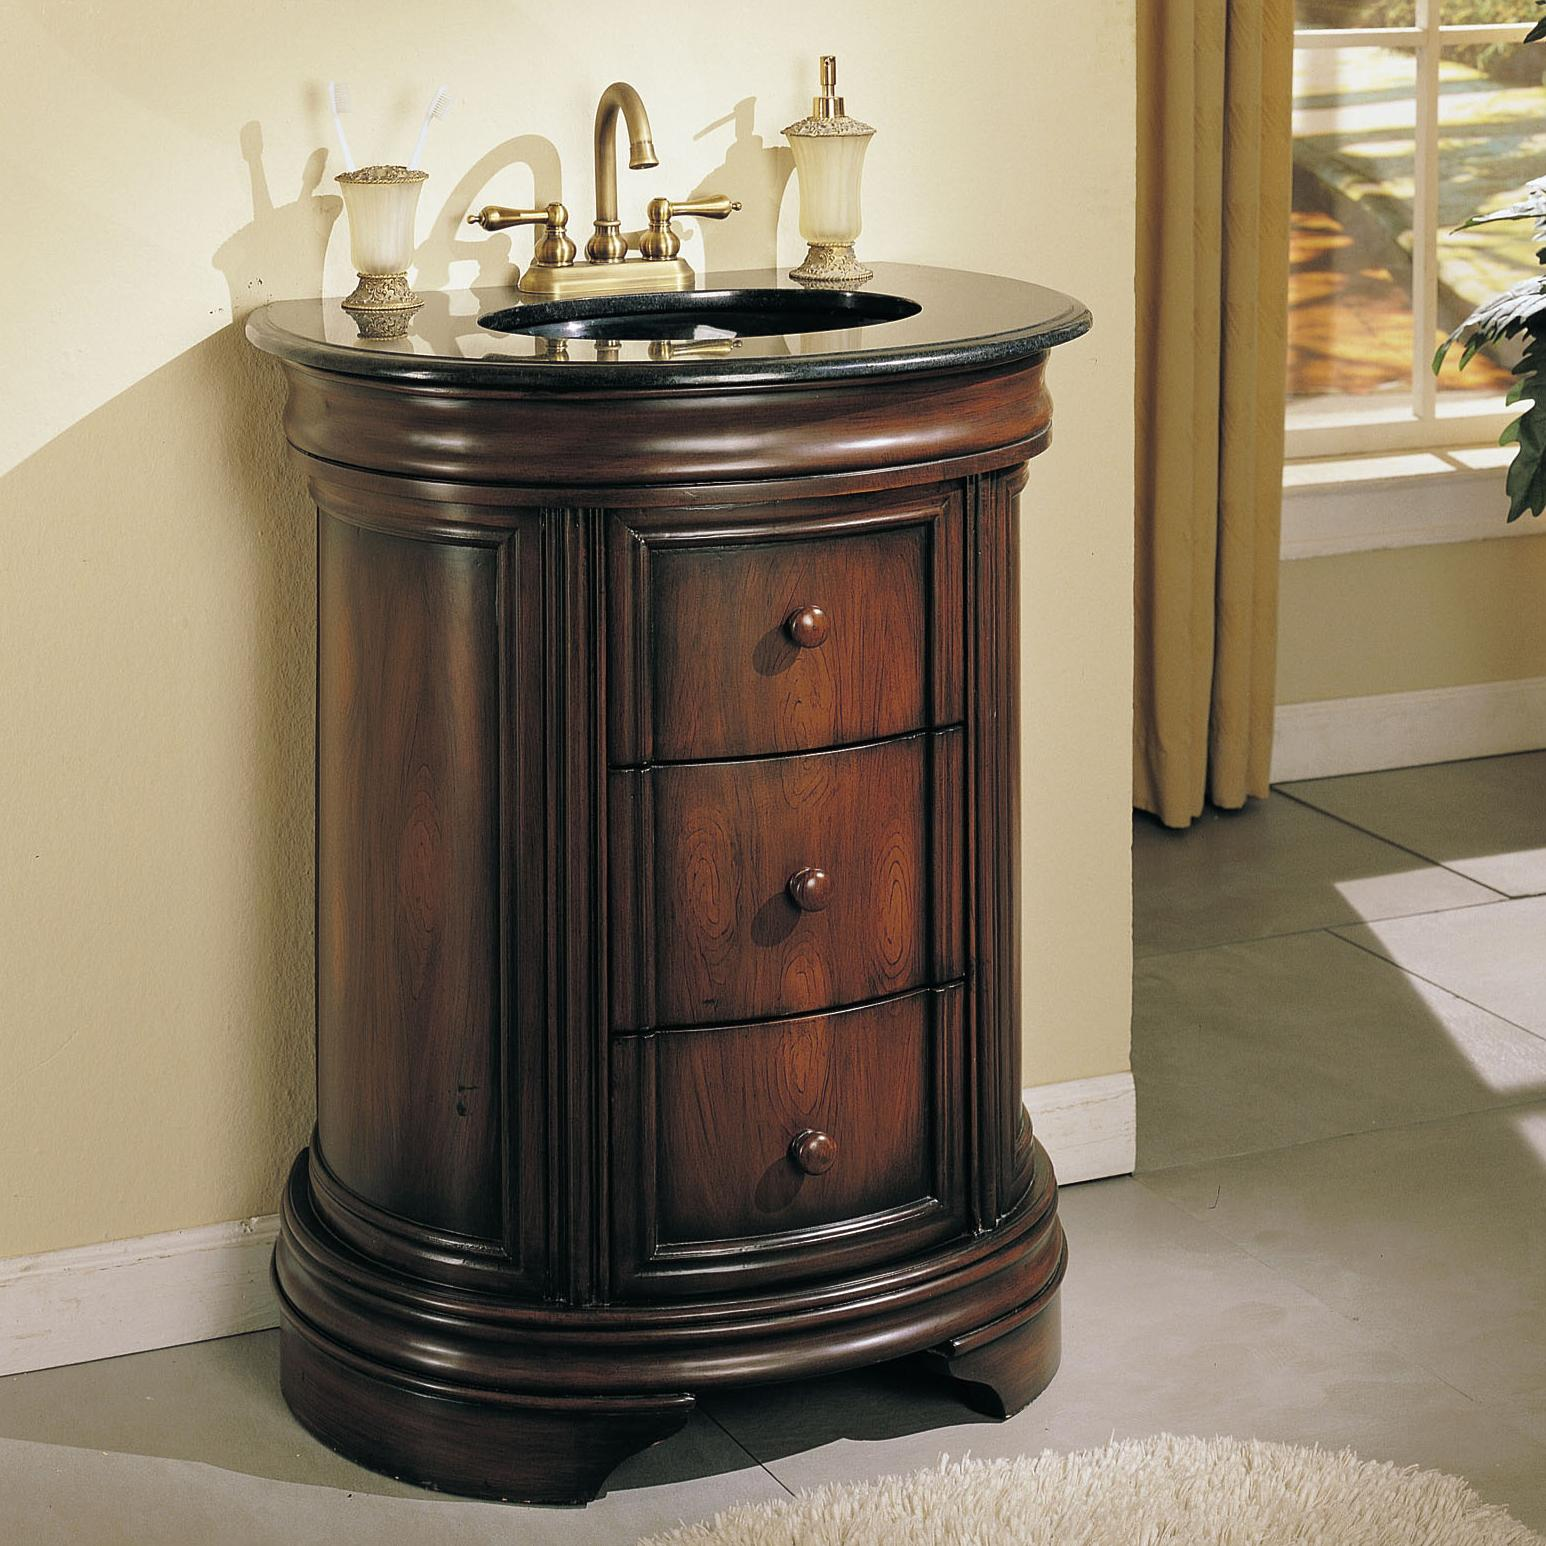 Acme Furniture Vanity Sinks Vanity Sink - Item Number: 06926